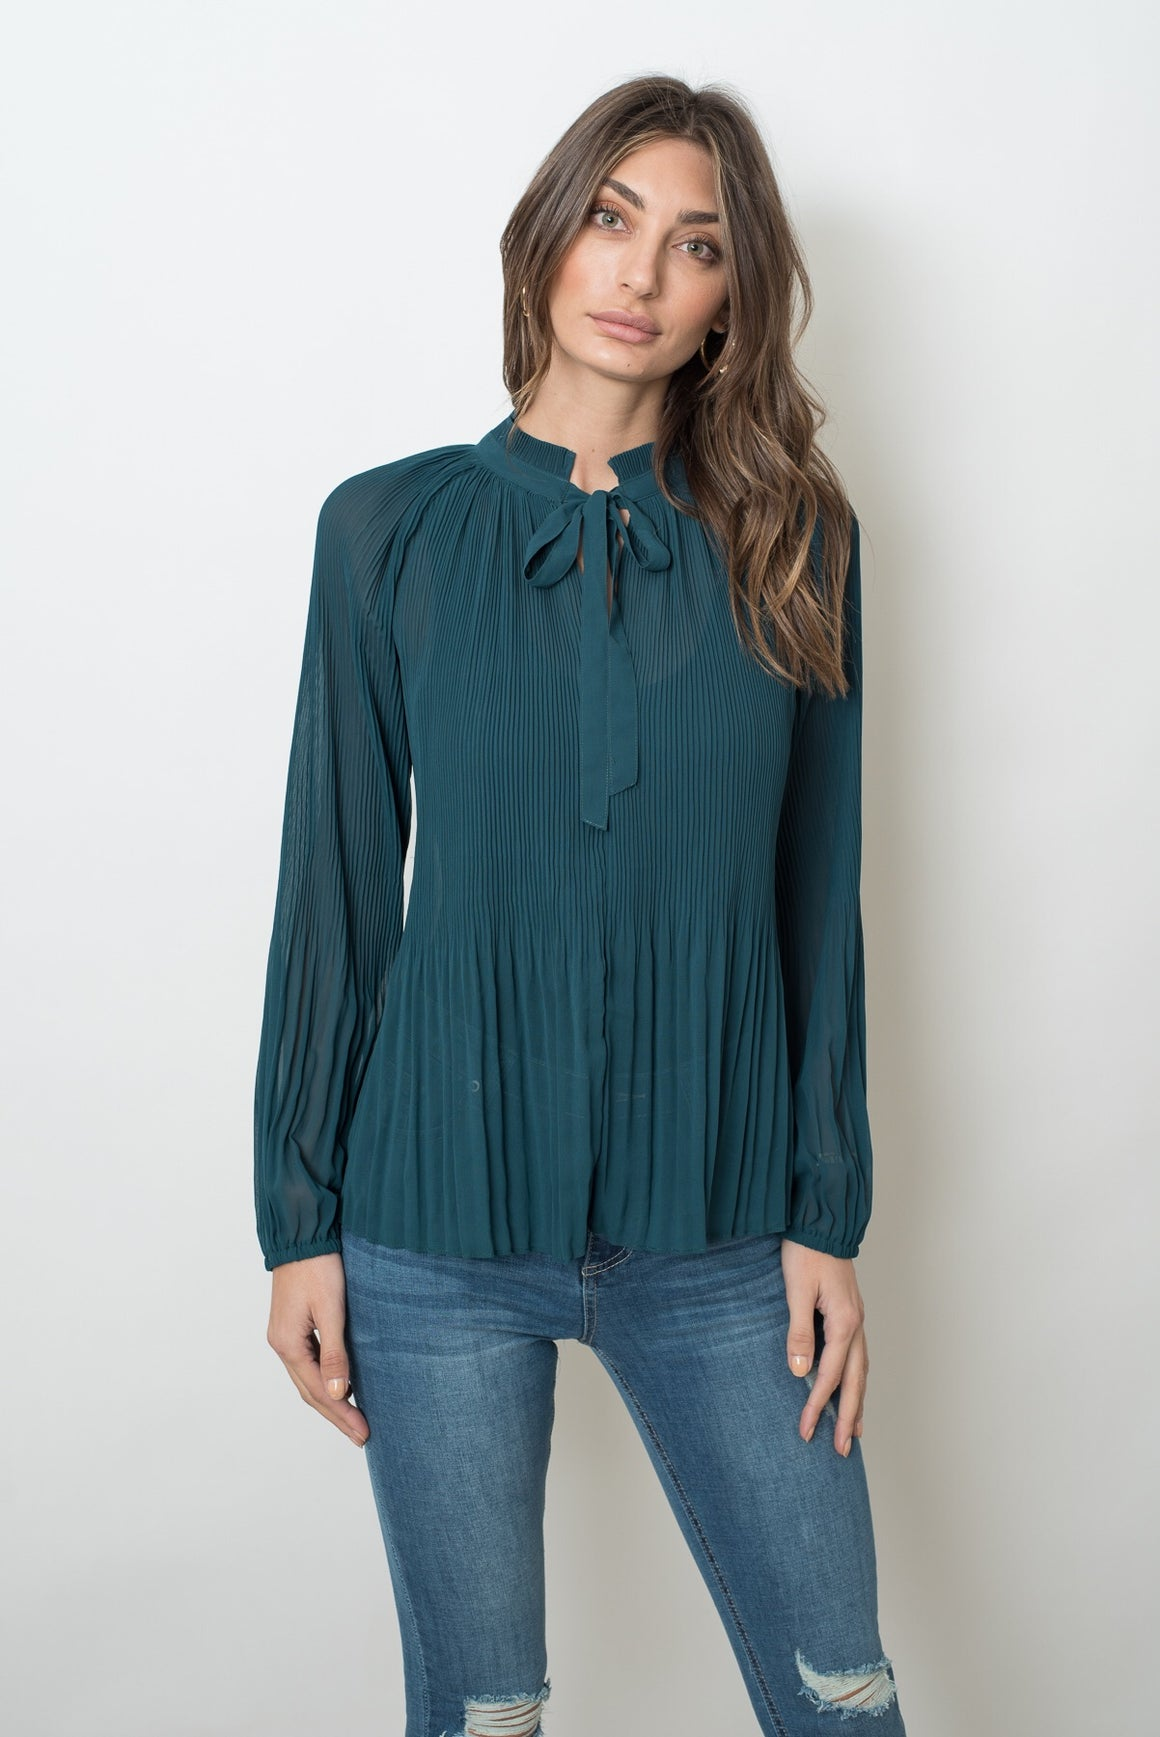 MADELINE PLEAT TOP - EMERALD GREEN